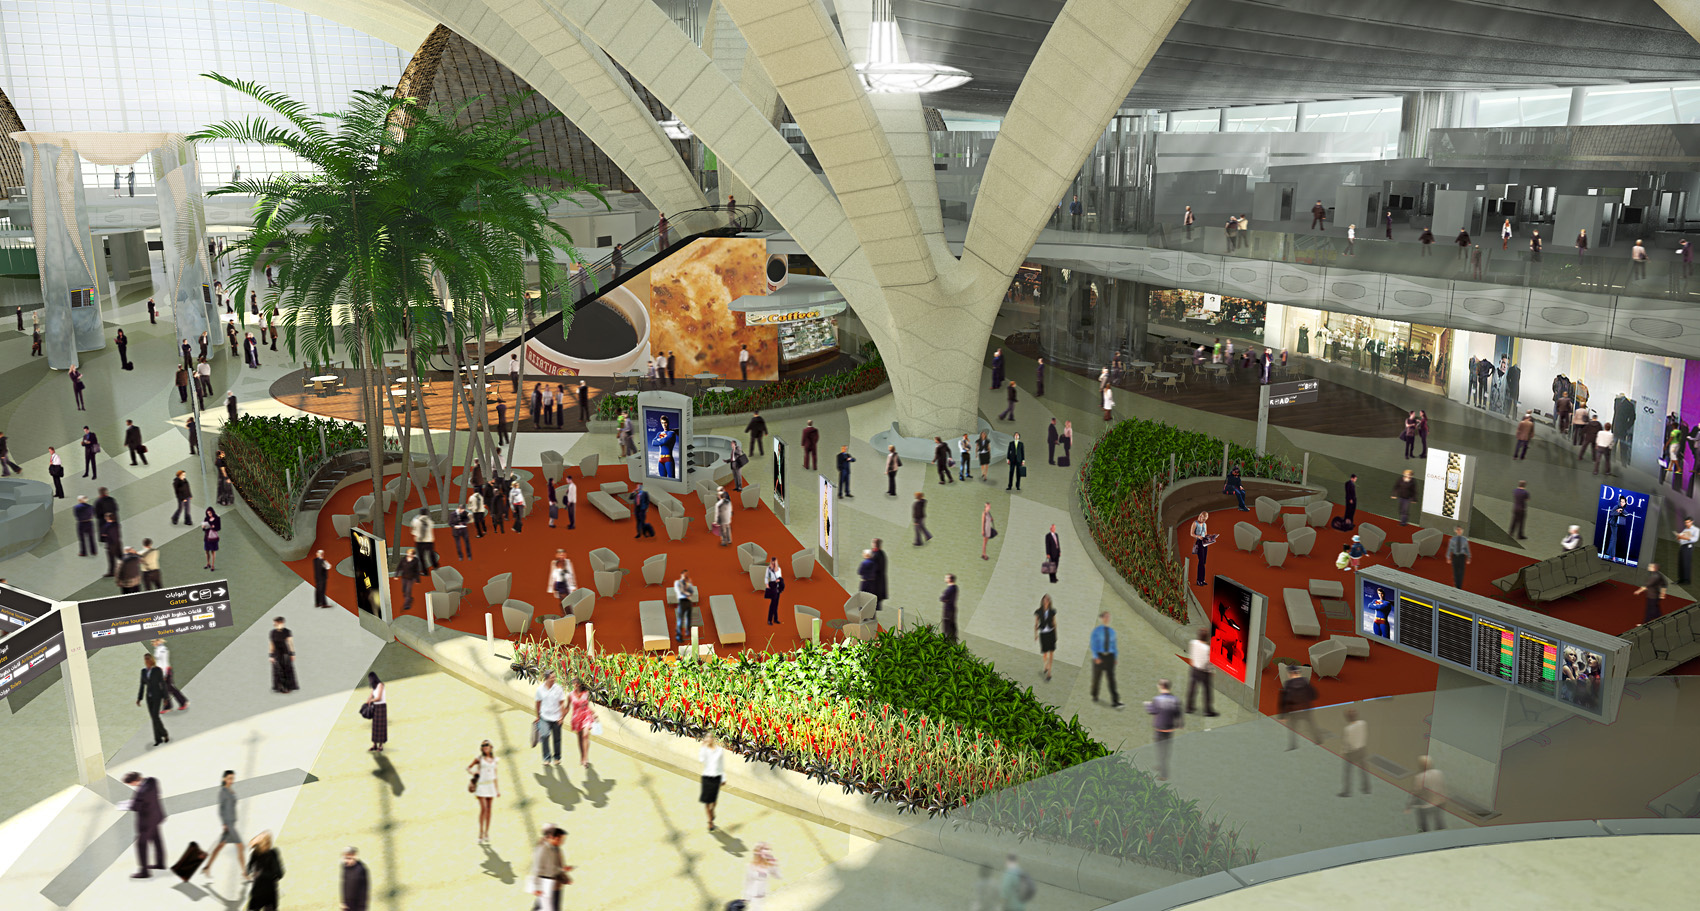 Formakers abu dhabi international airport kpf for Hispano international decor abu dhabi